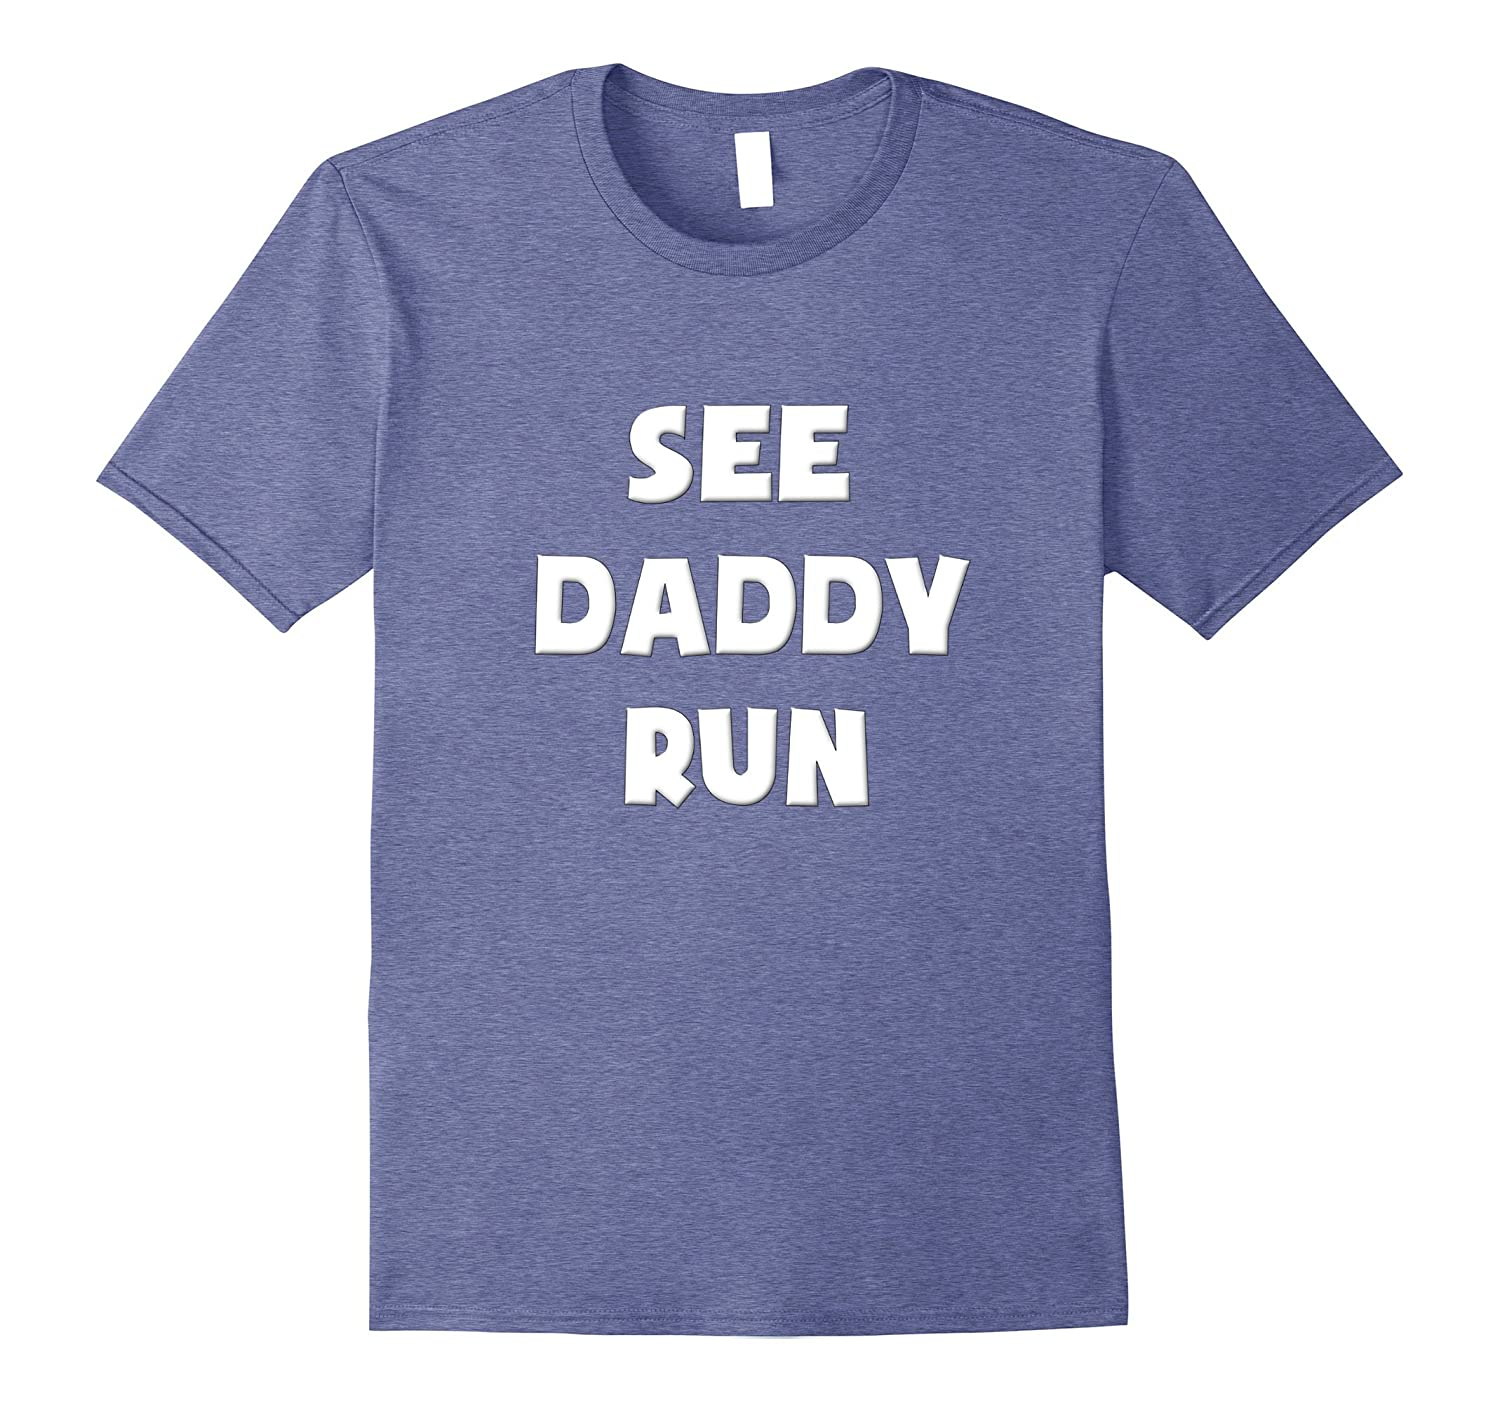 082f7bac Runner Dad Shirts Funny Running Sayings Quotes Daddy Shirts-ANZ ...